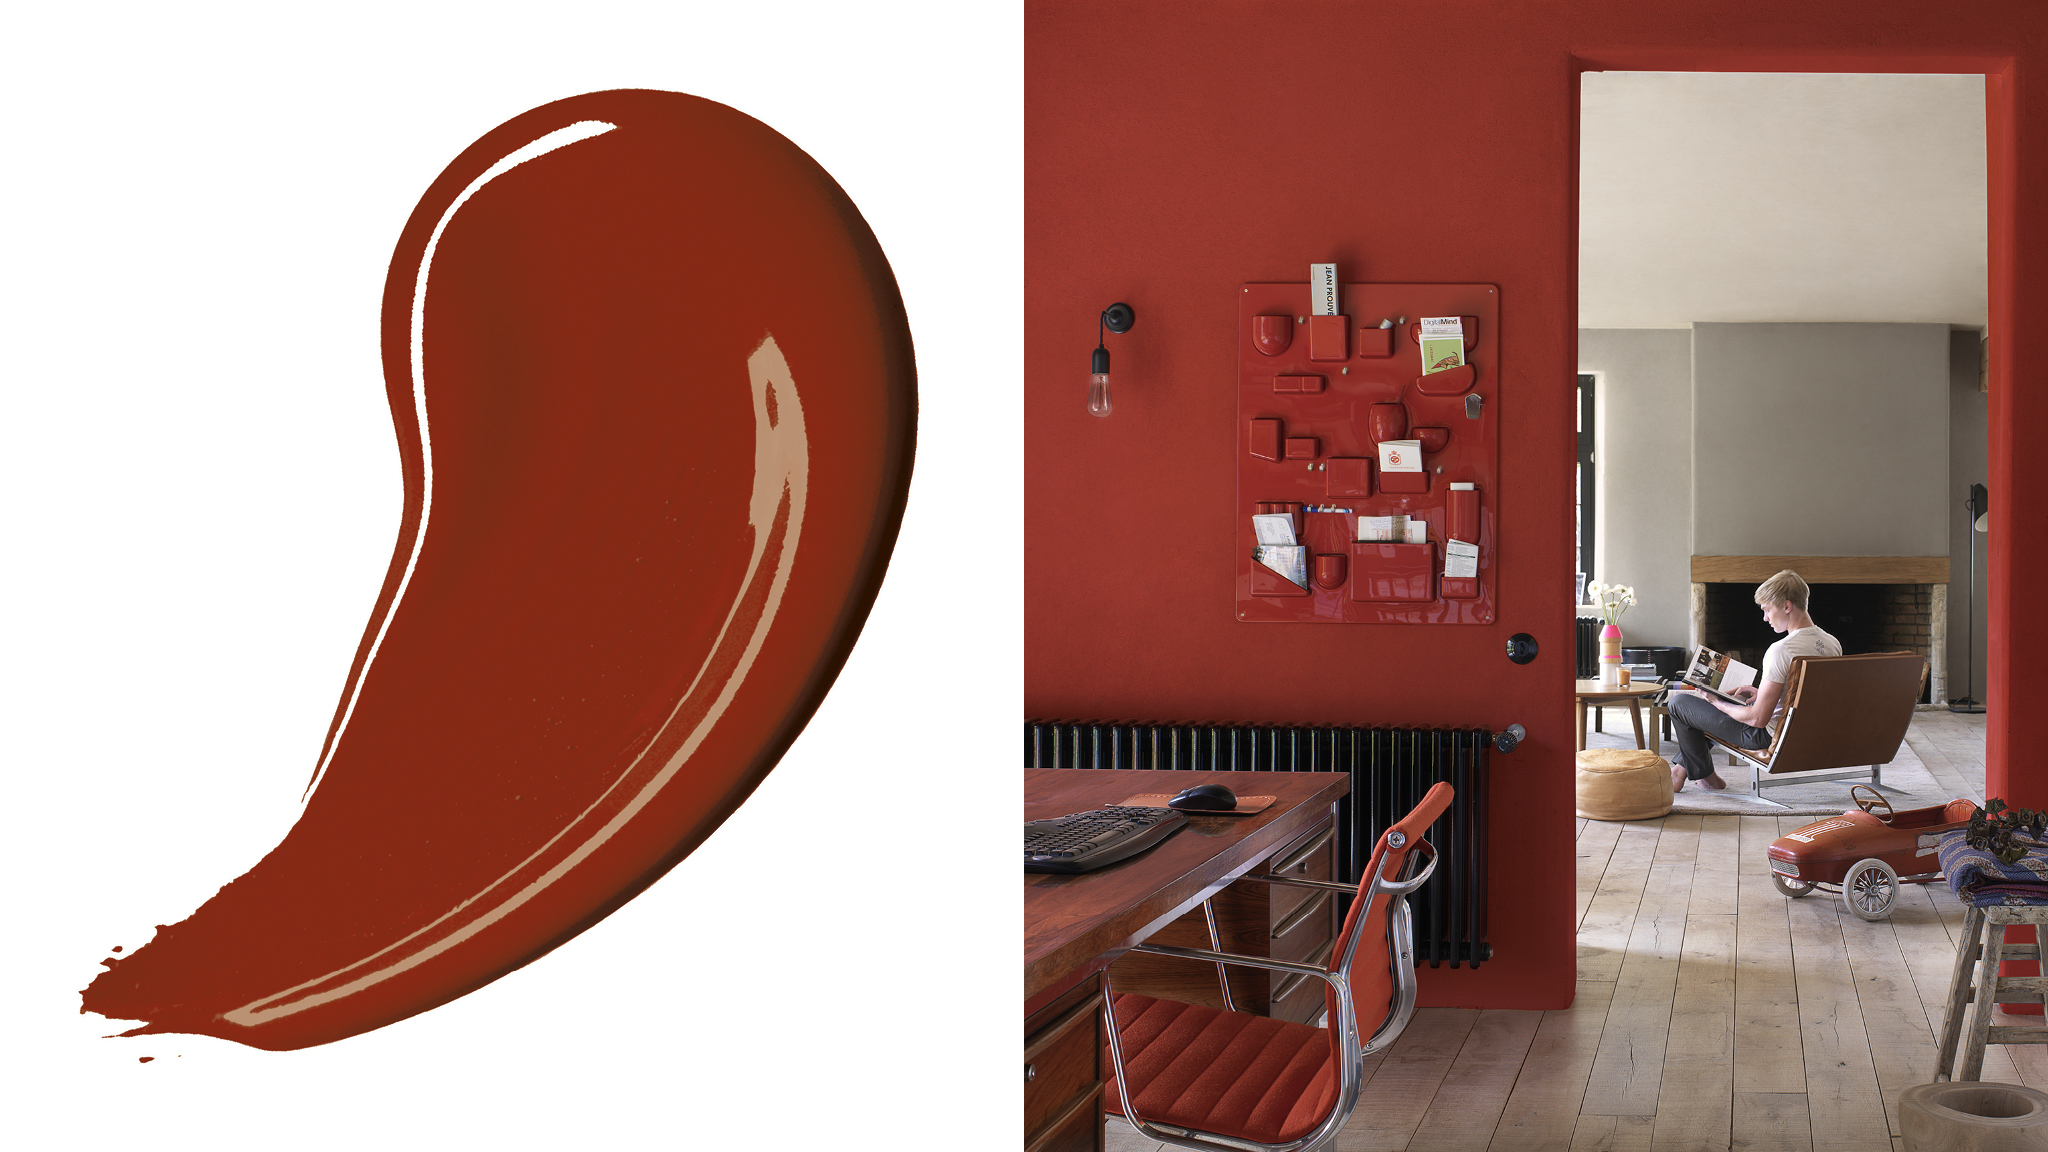 Choosing a darker colour scheme is a great way to make a room feel instantly more cosy and intimate. Rich, deep reds or chocolaty shades tend to pull walls closer towards you.